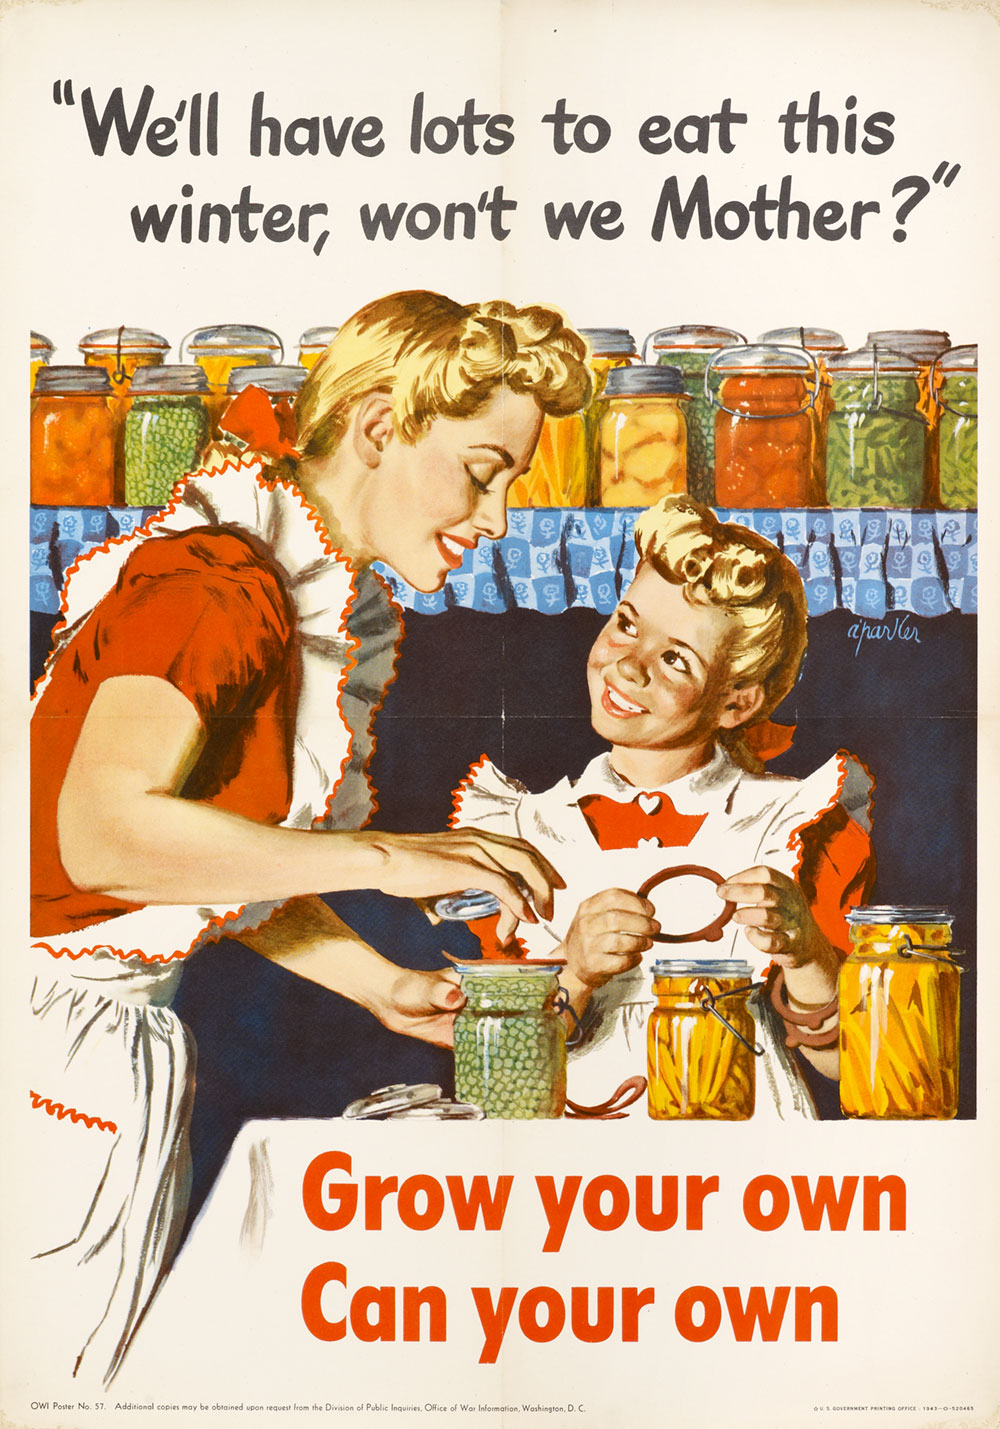 Poster depicting a mother and daughter standing at a kitchen table canning fruits and vegetables